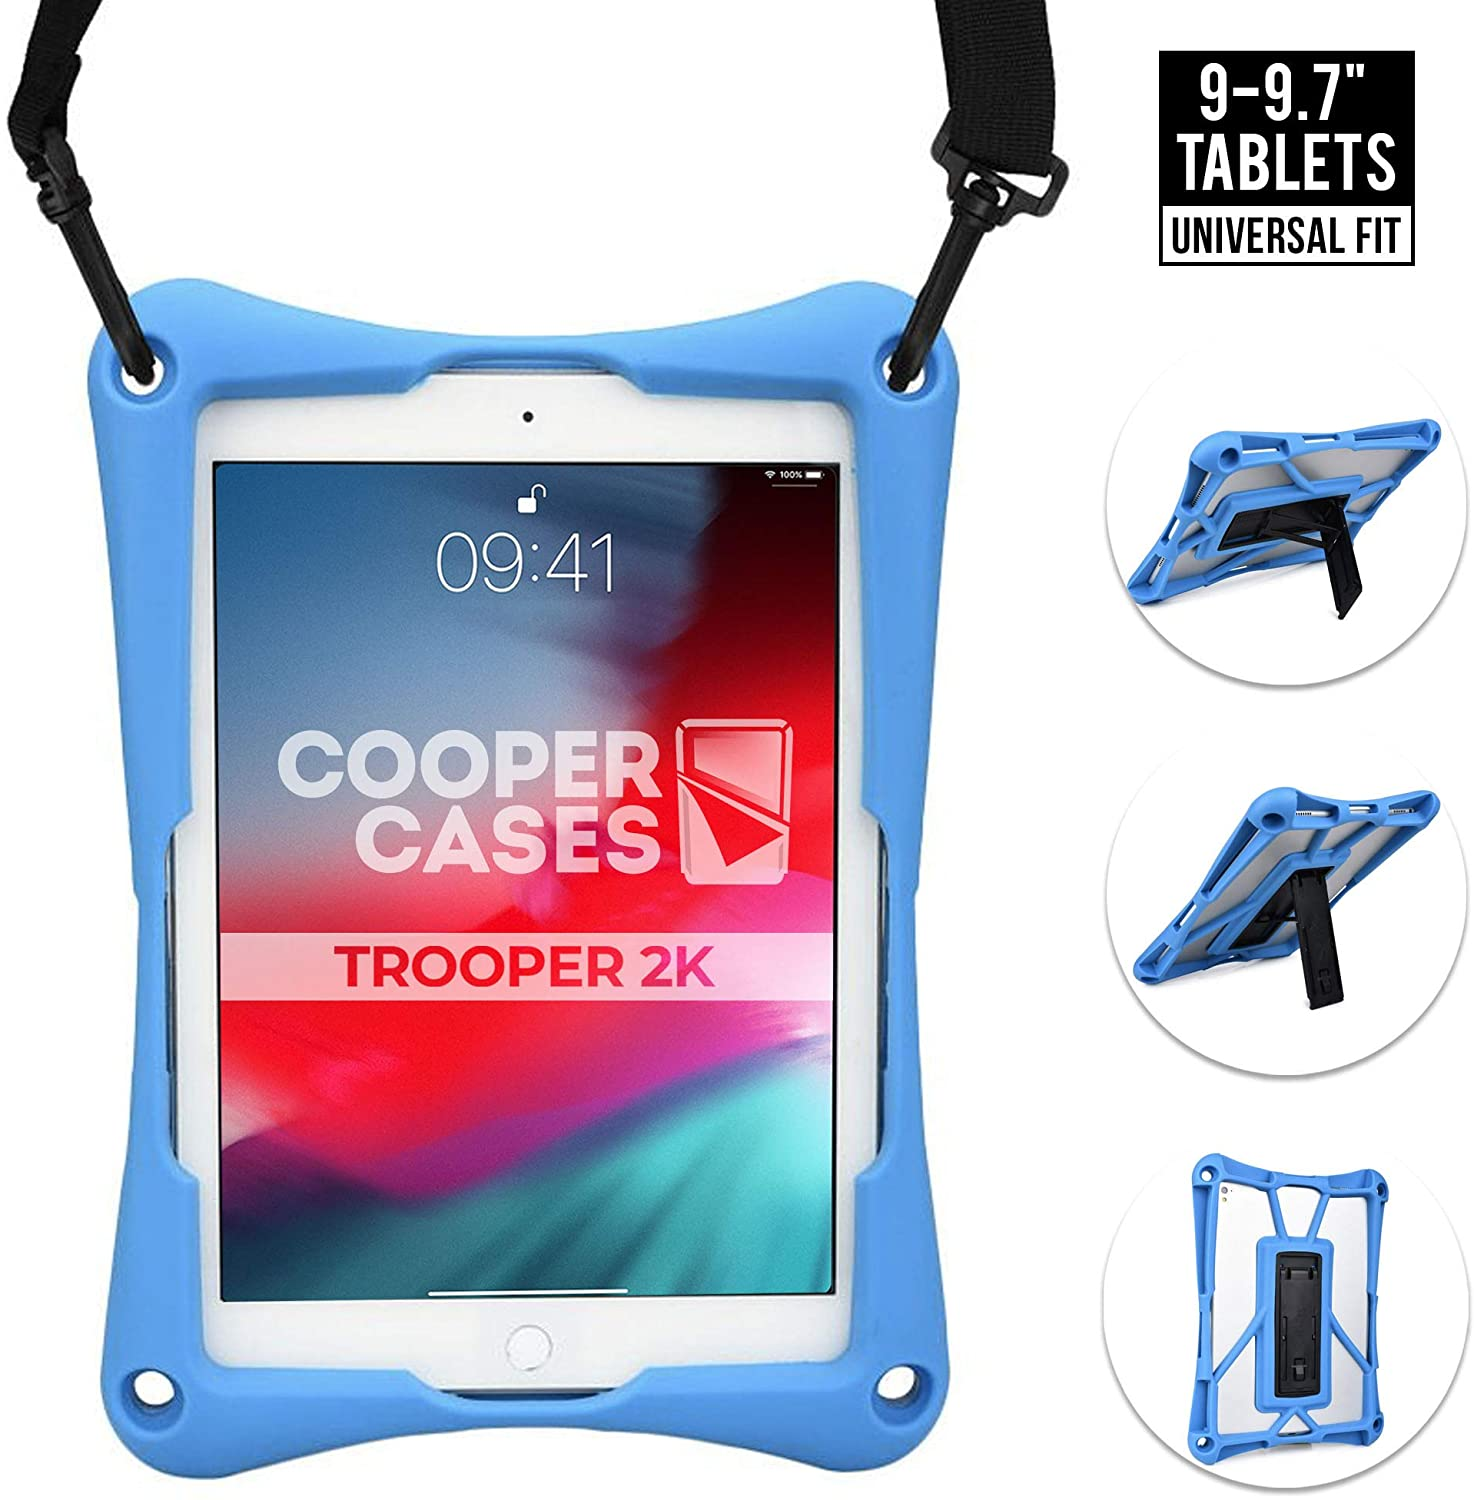 Cooper Trooper 2K Rugged Case for 9-9.7 Inch Tablet | Tough Bumper Protective Drop Shock Proof Kids Holder Carrying Cover Bag, Stand, Strap (Blue)